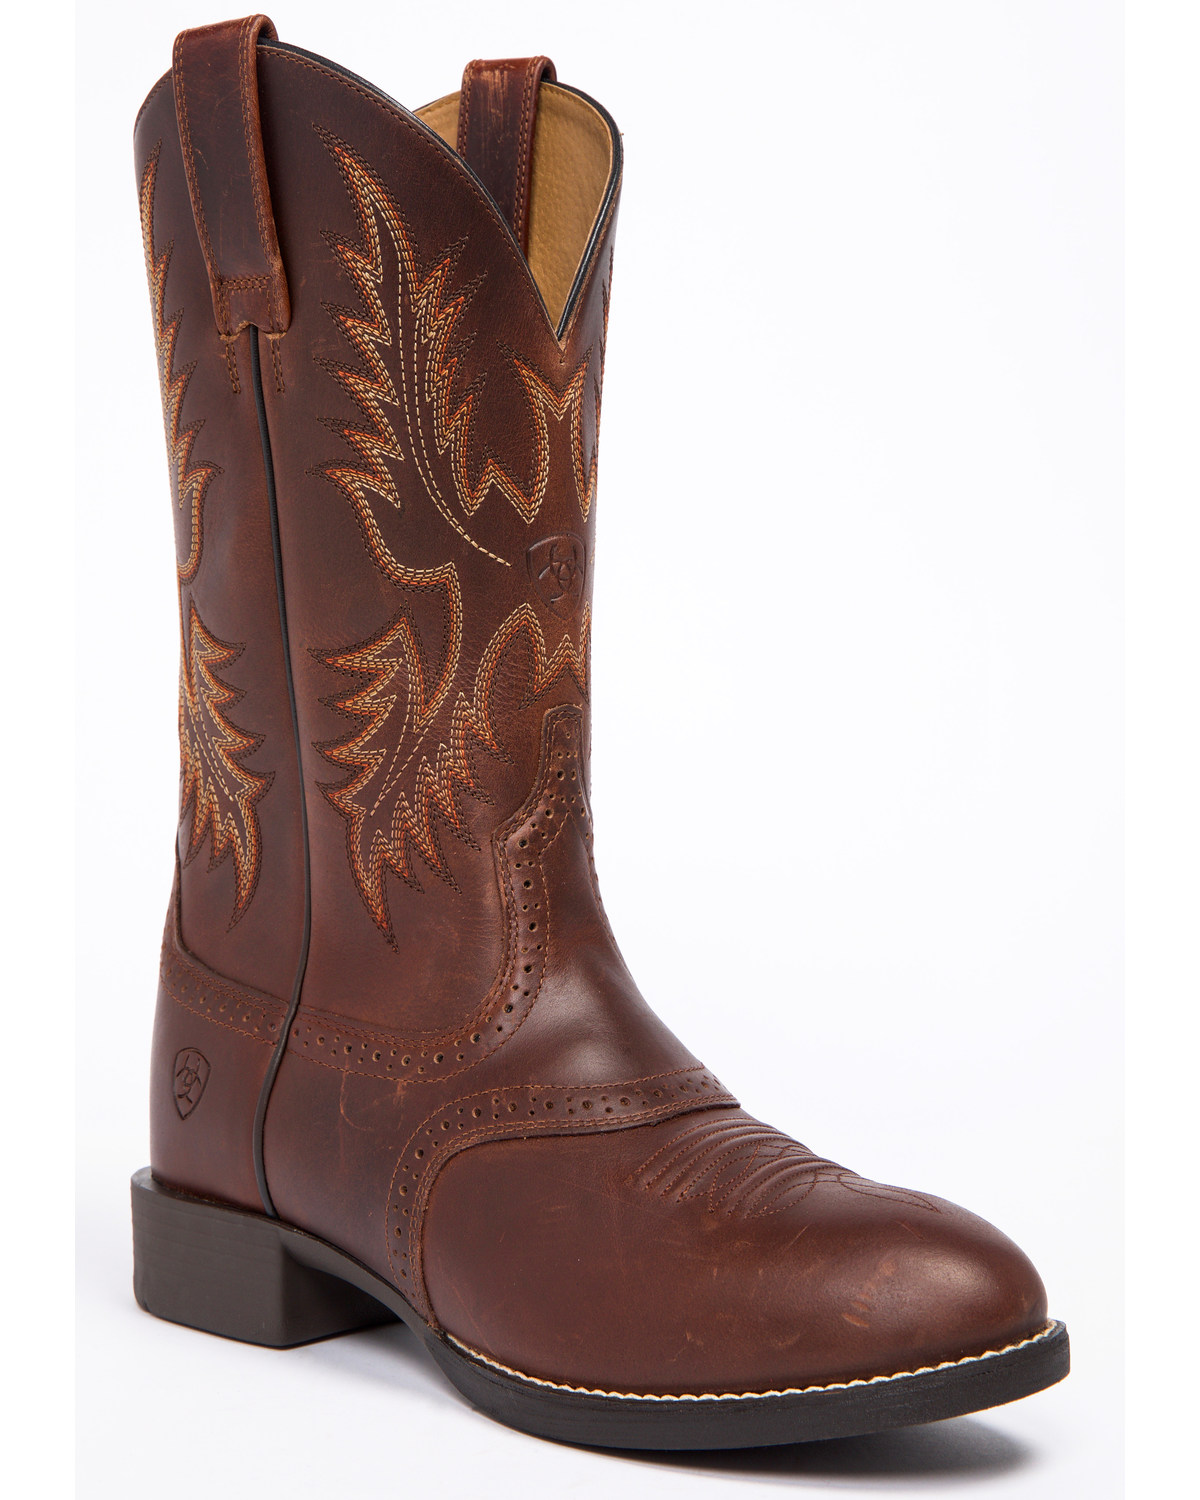 acc944d0784 Ariat Men's Nutmeg Heritage Stockman Boots - Round Toe